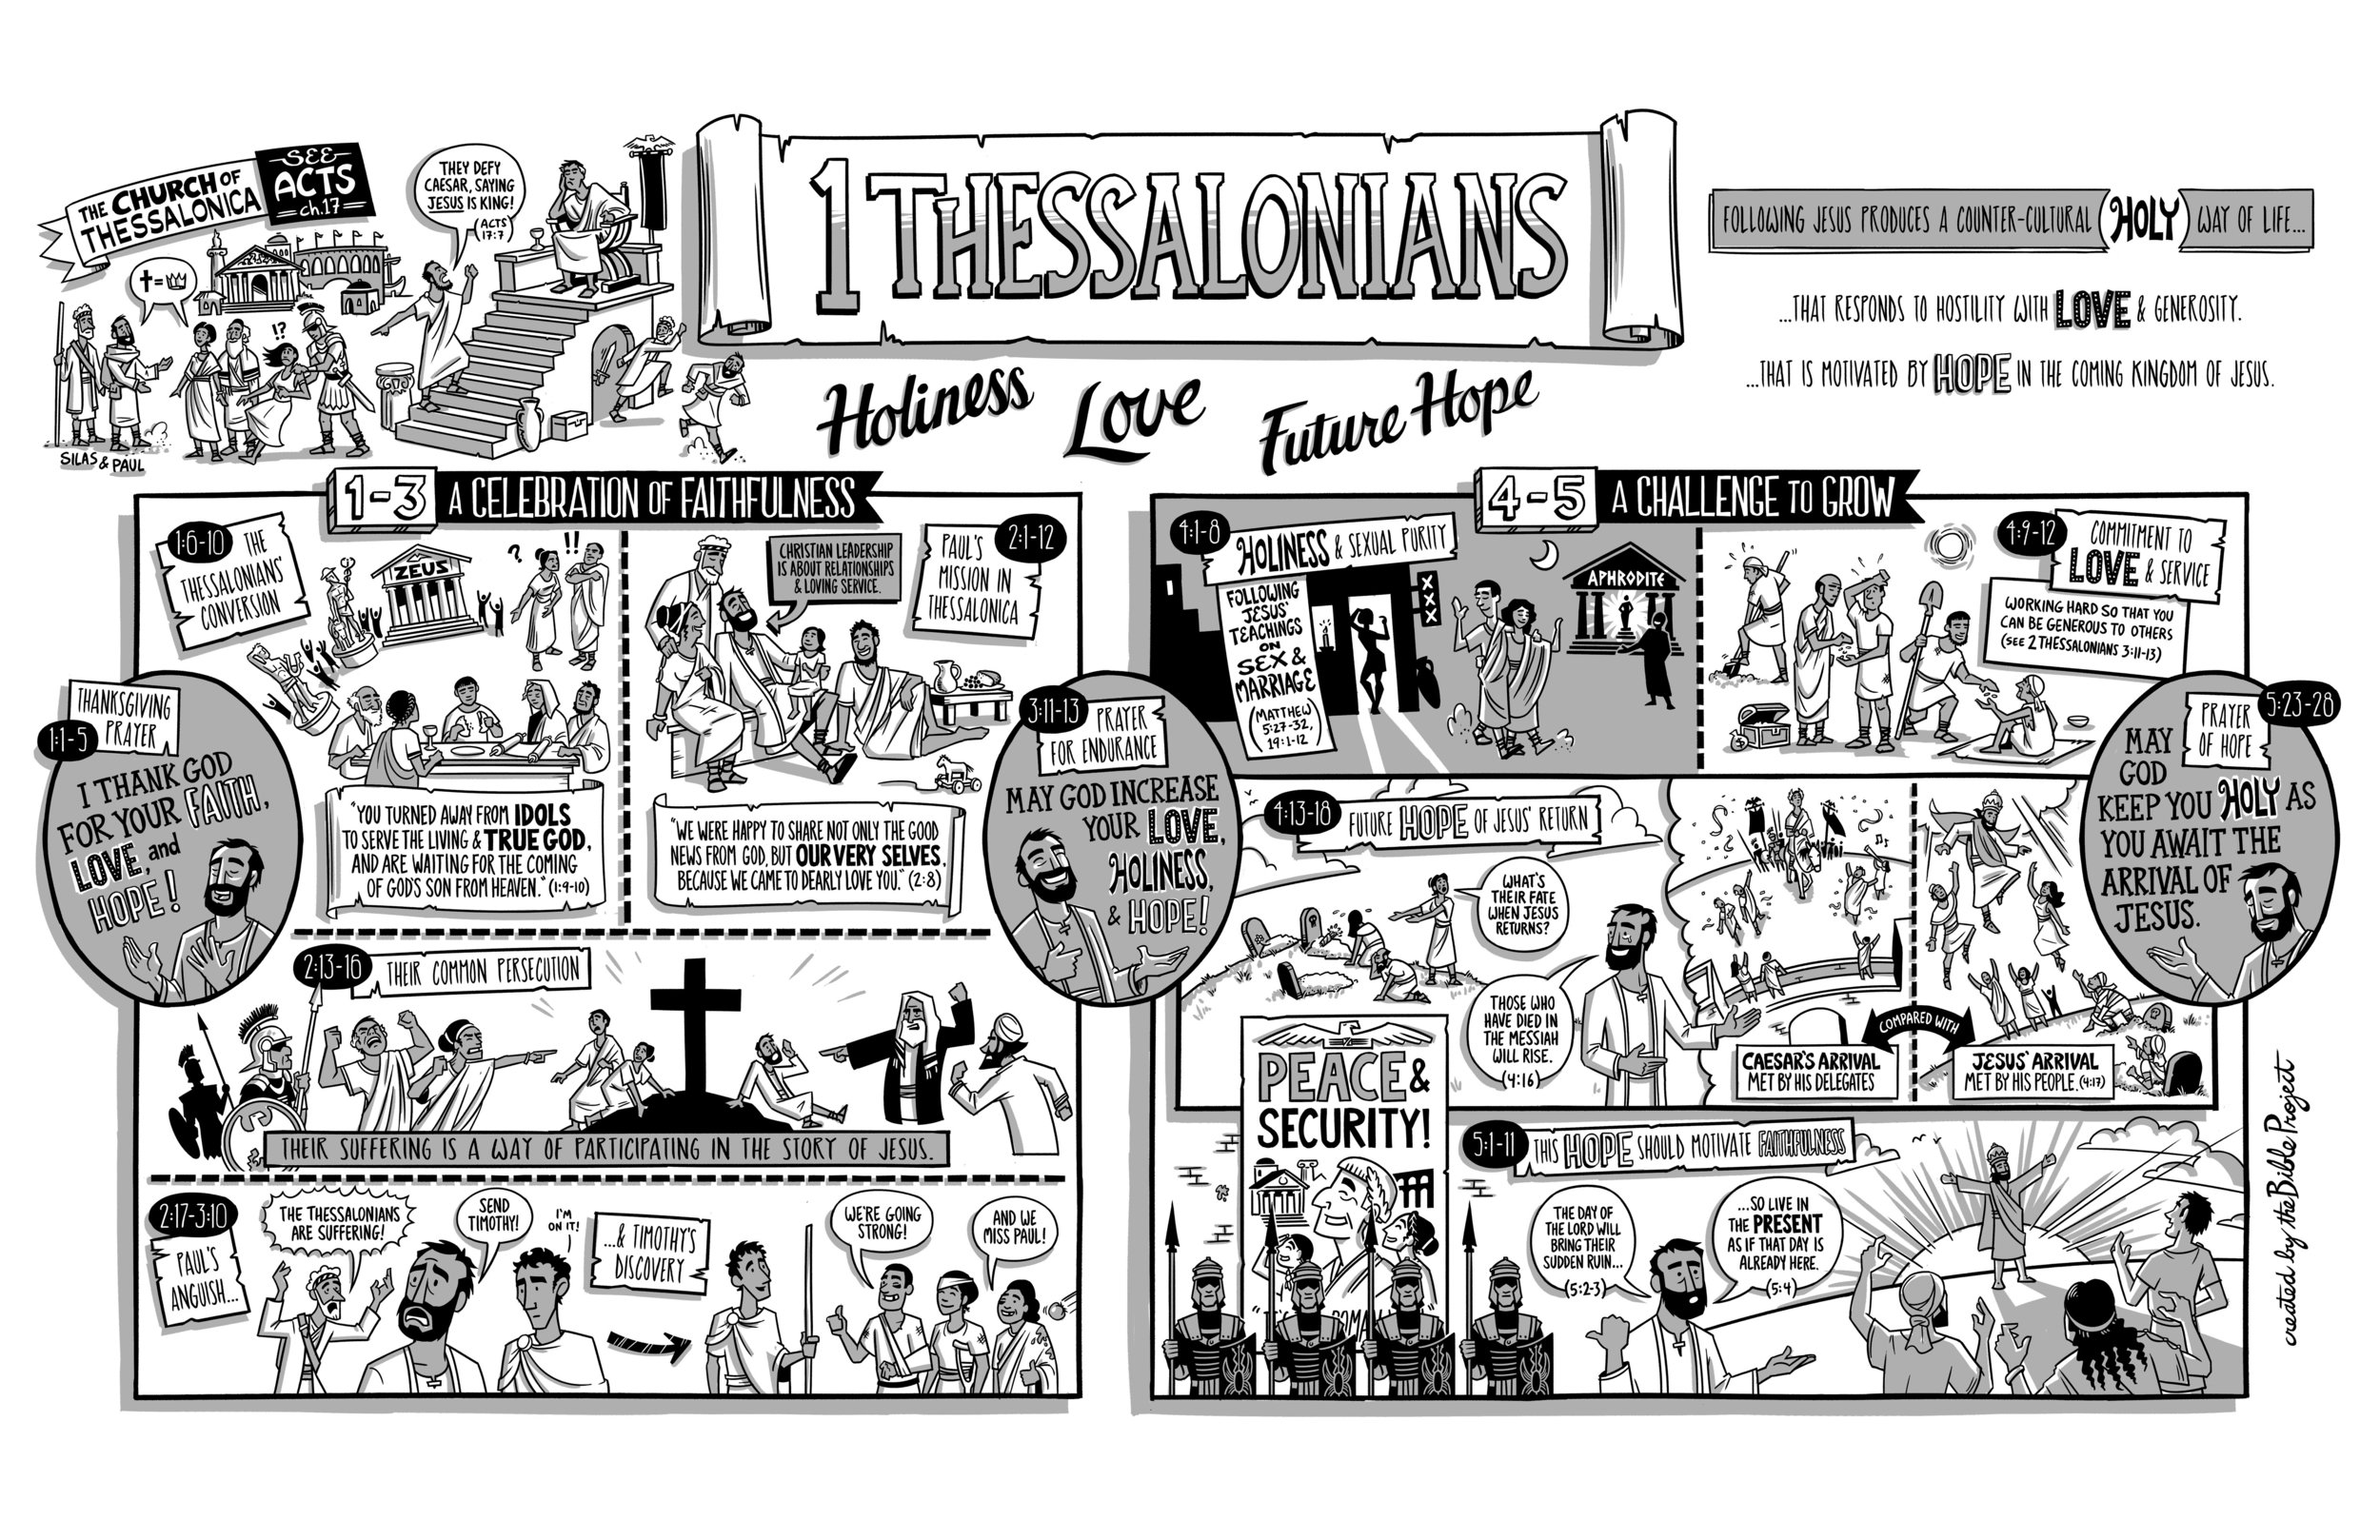 Click the image to go to the video overview of 1 Thessalonians, courtesy of The Bible Project.